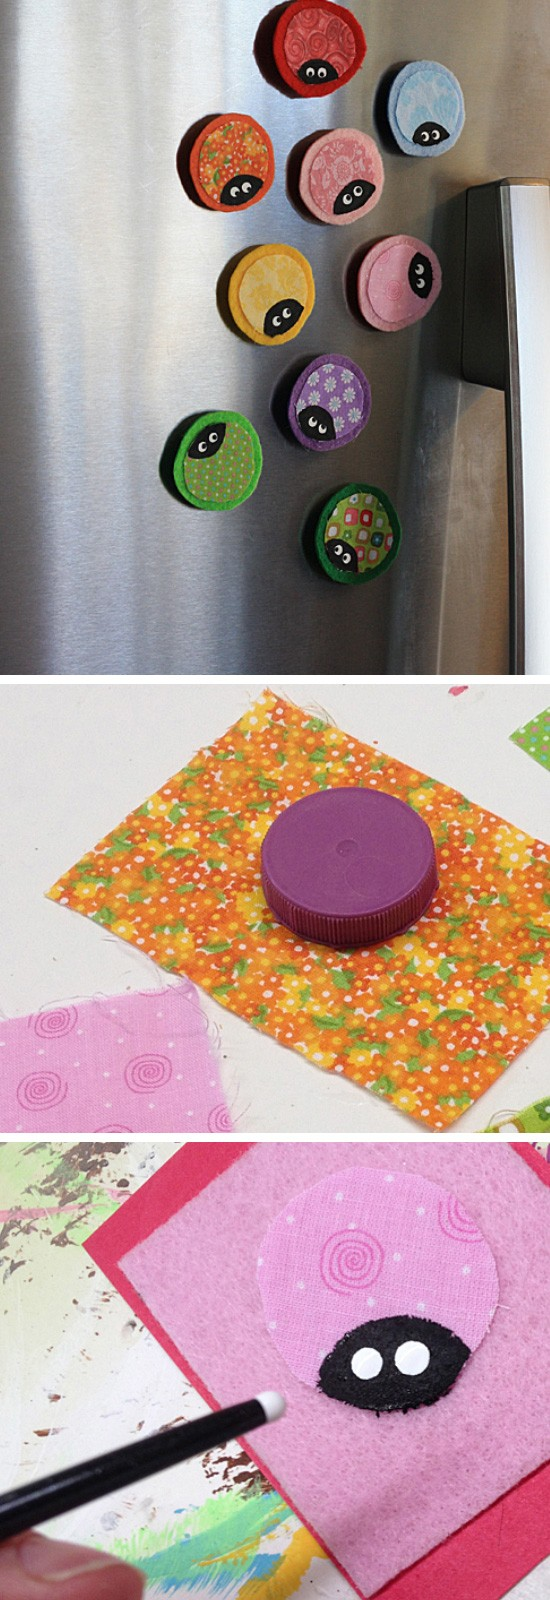 spring craft ideas for kids 30 creative diy crafts for 7180